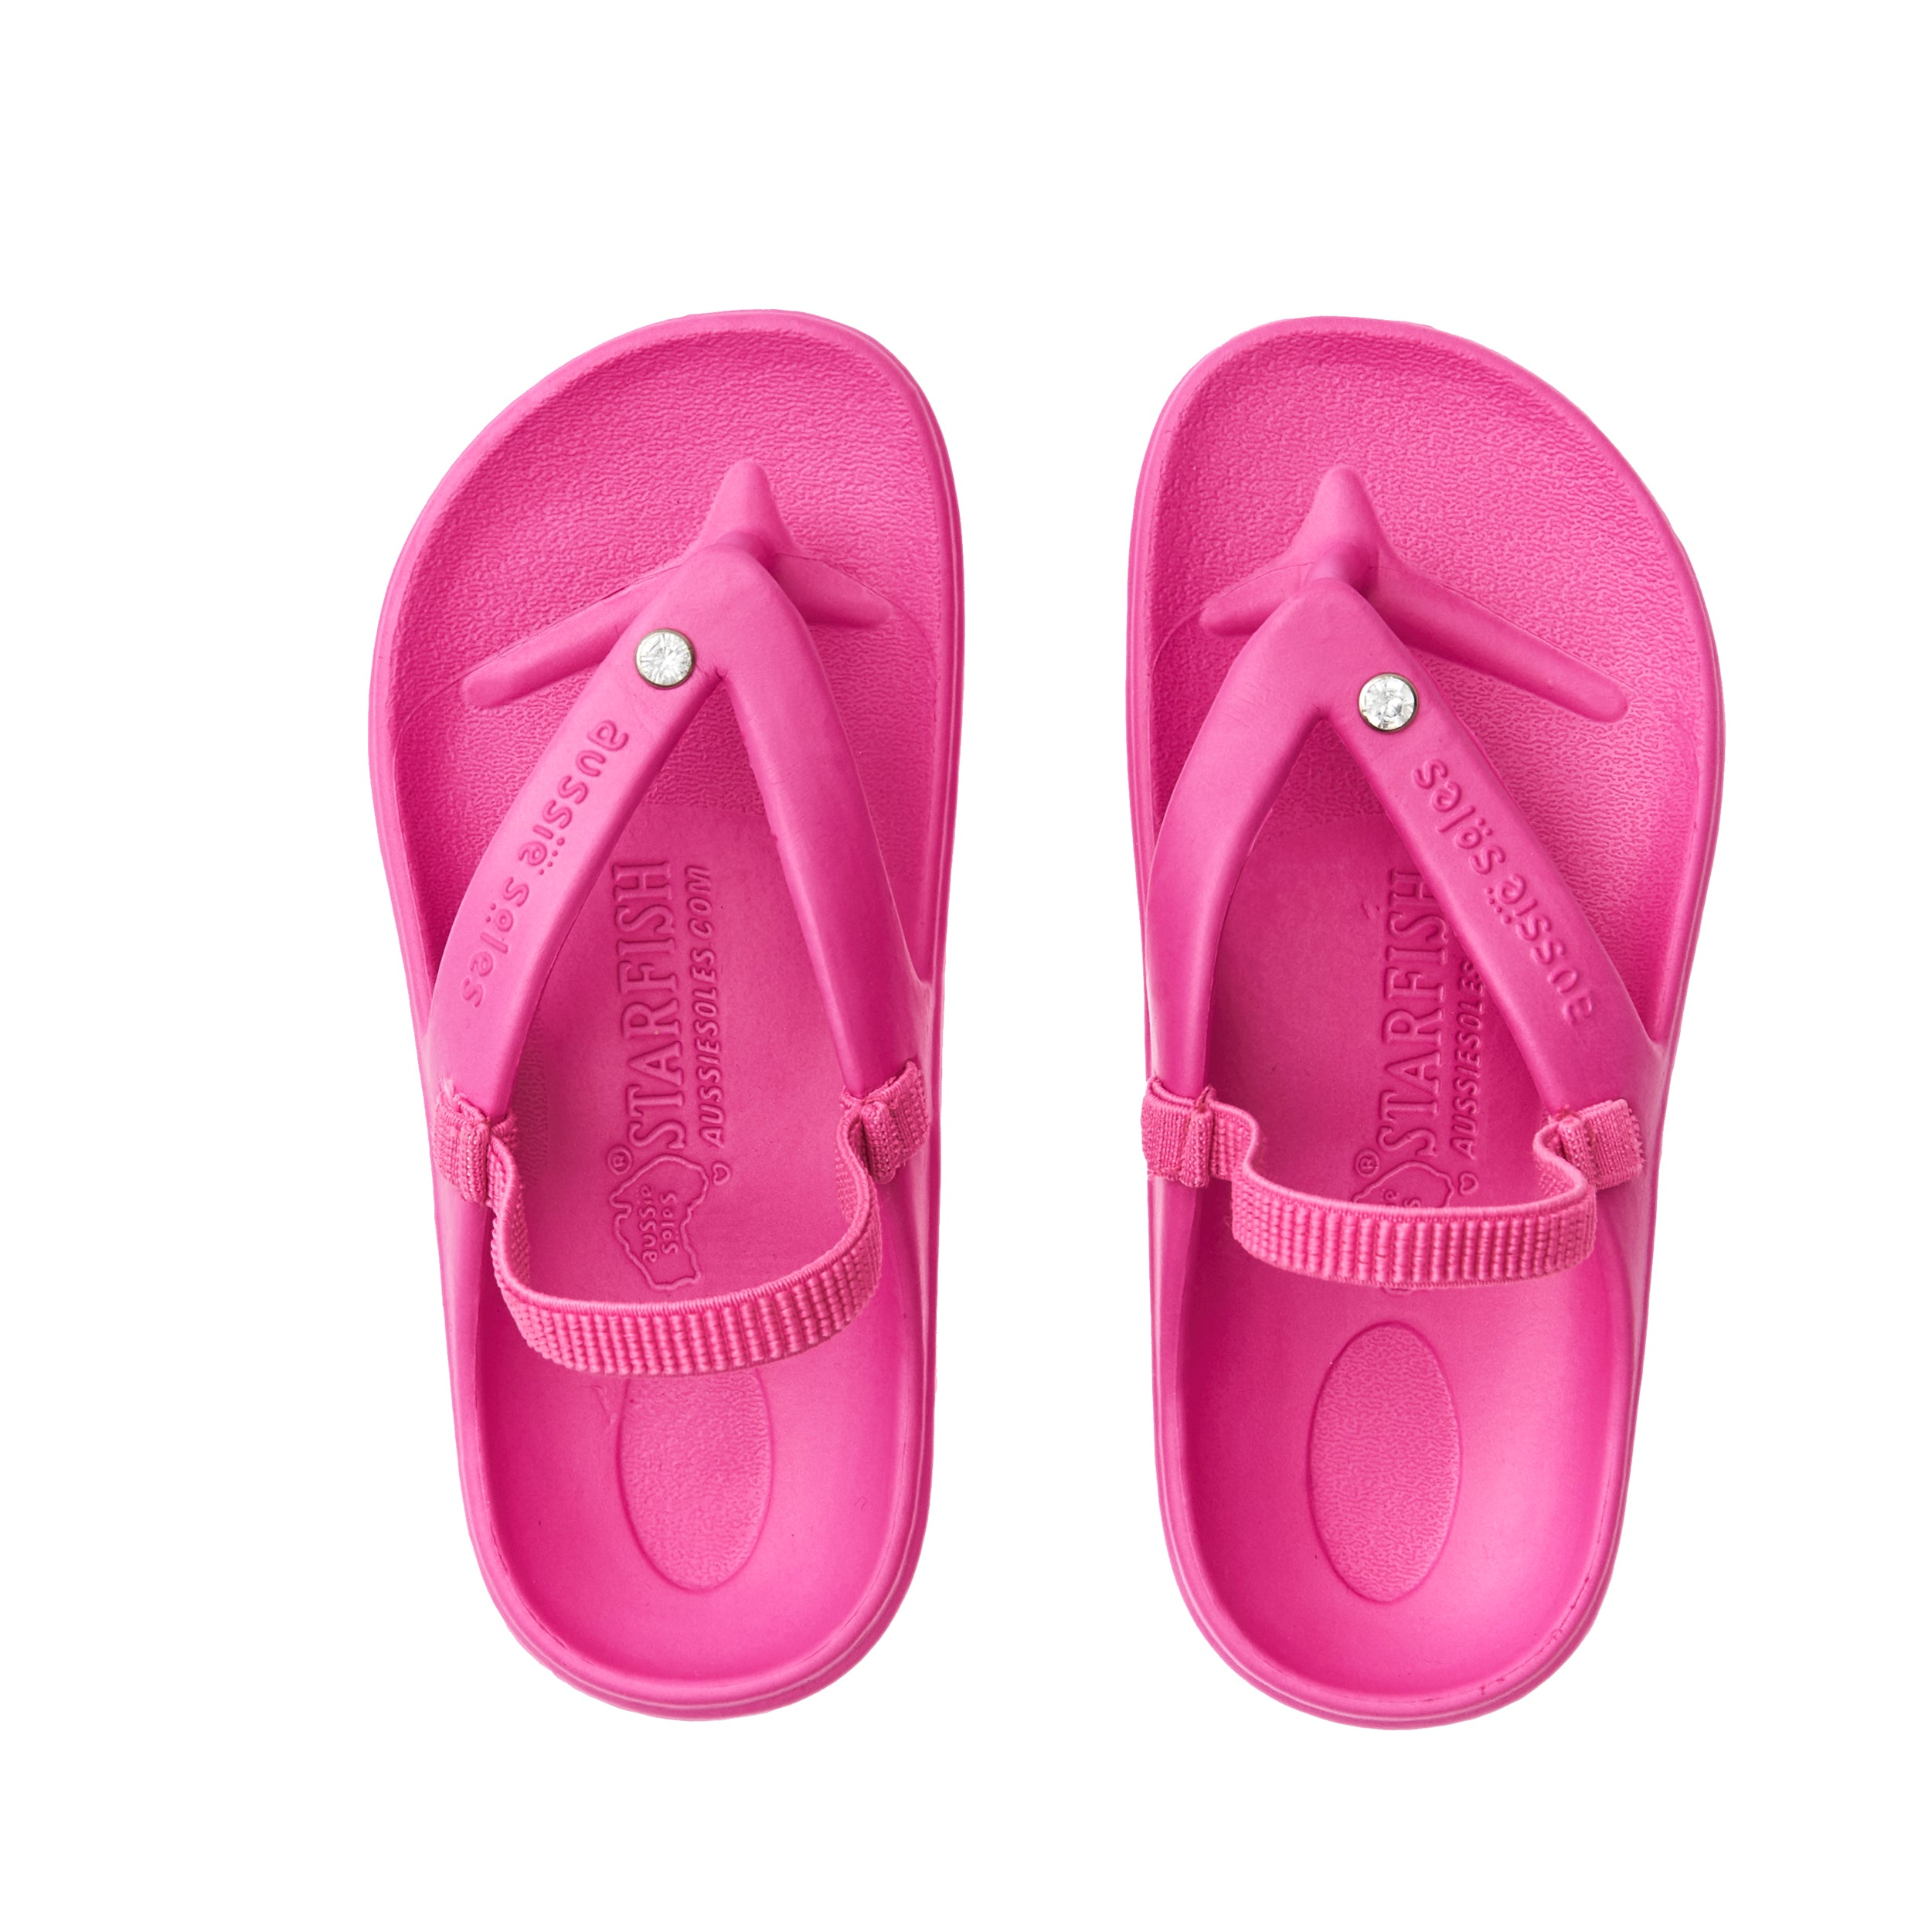 4244423e4 Children s Flip-Flops With Arch Support  Aussie Soles Orthotic ...